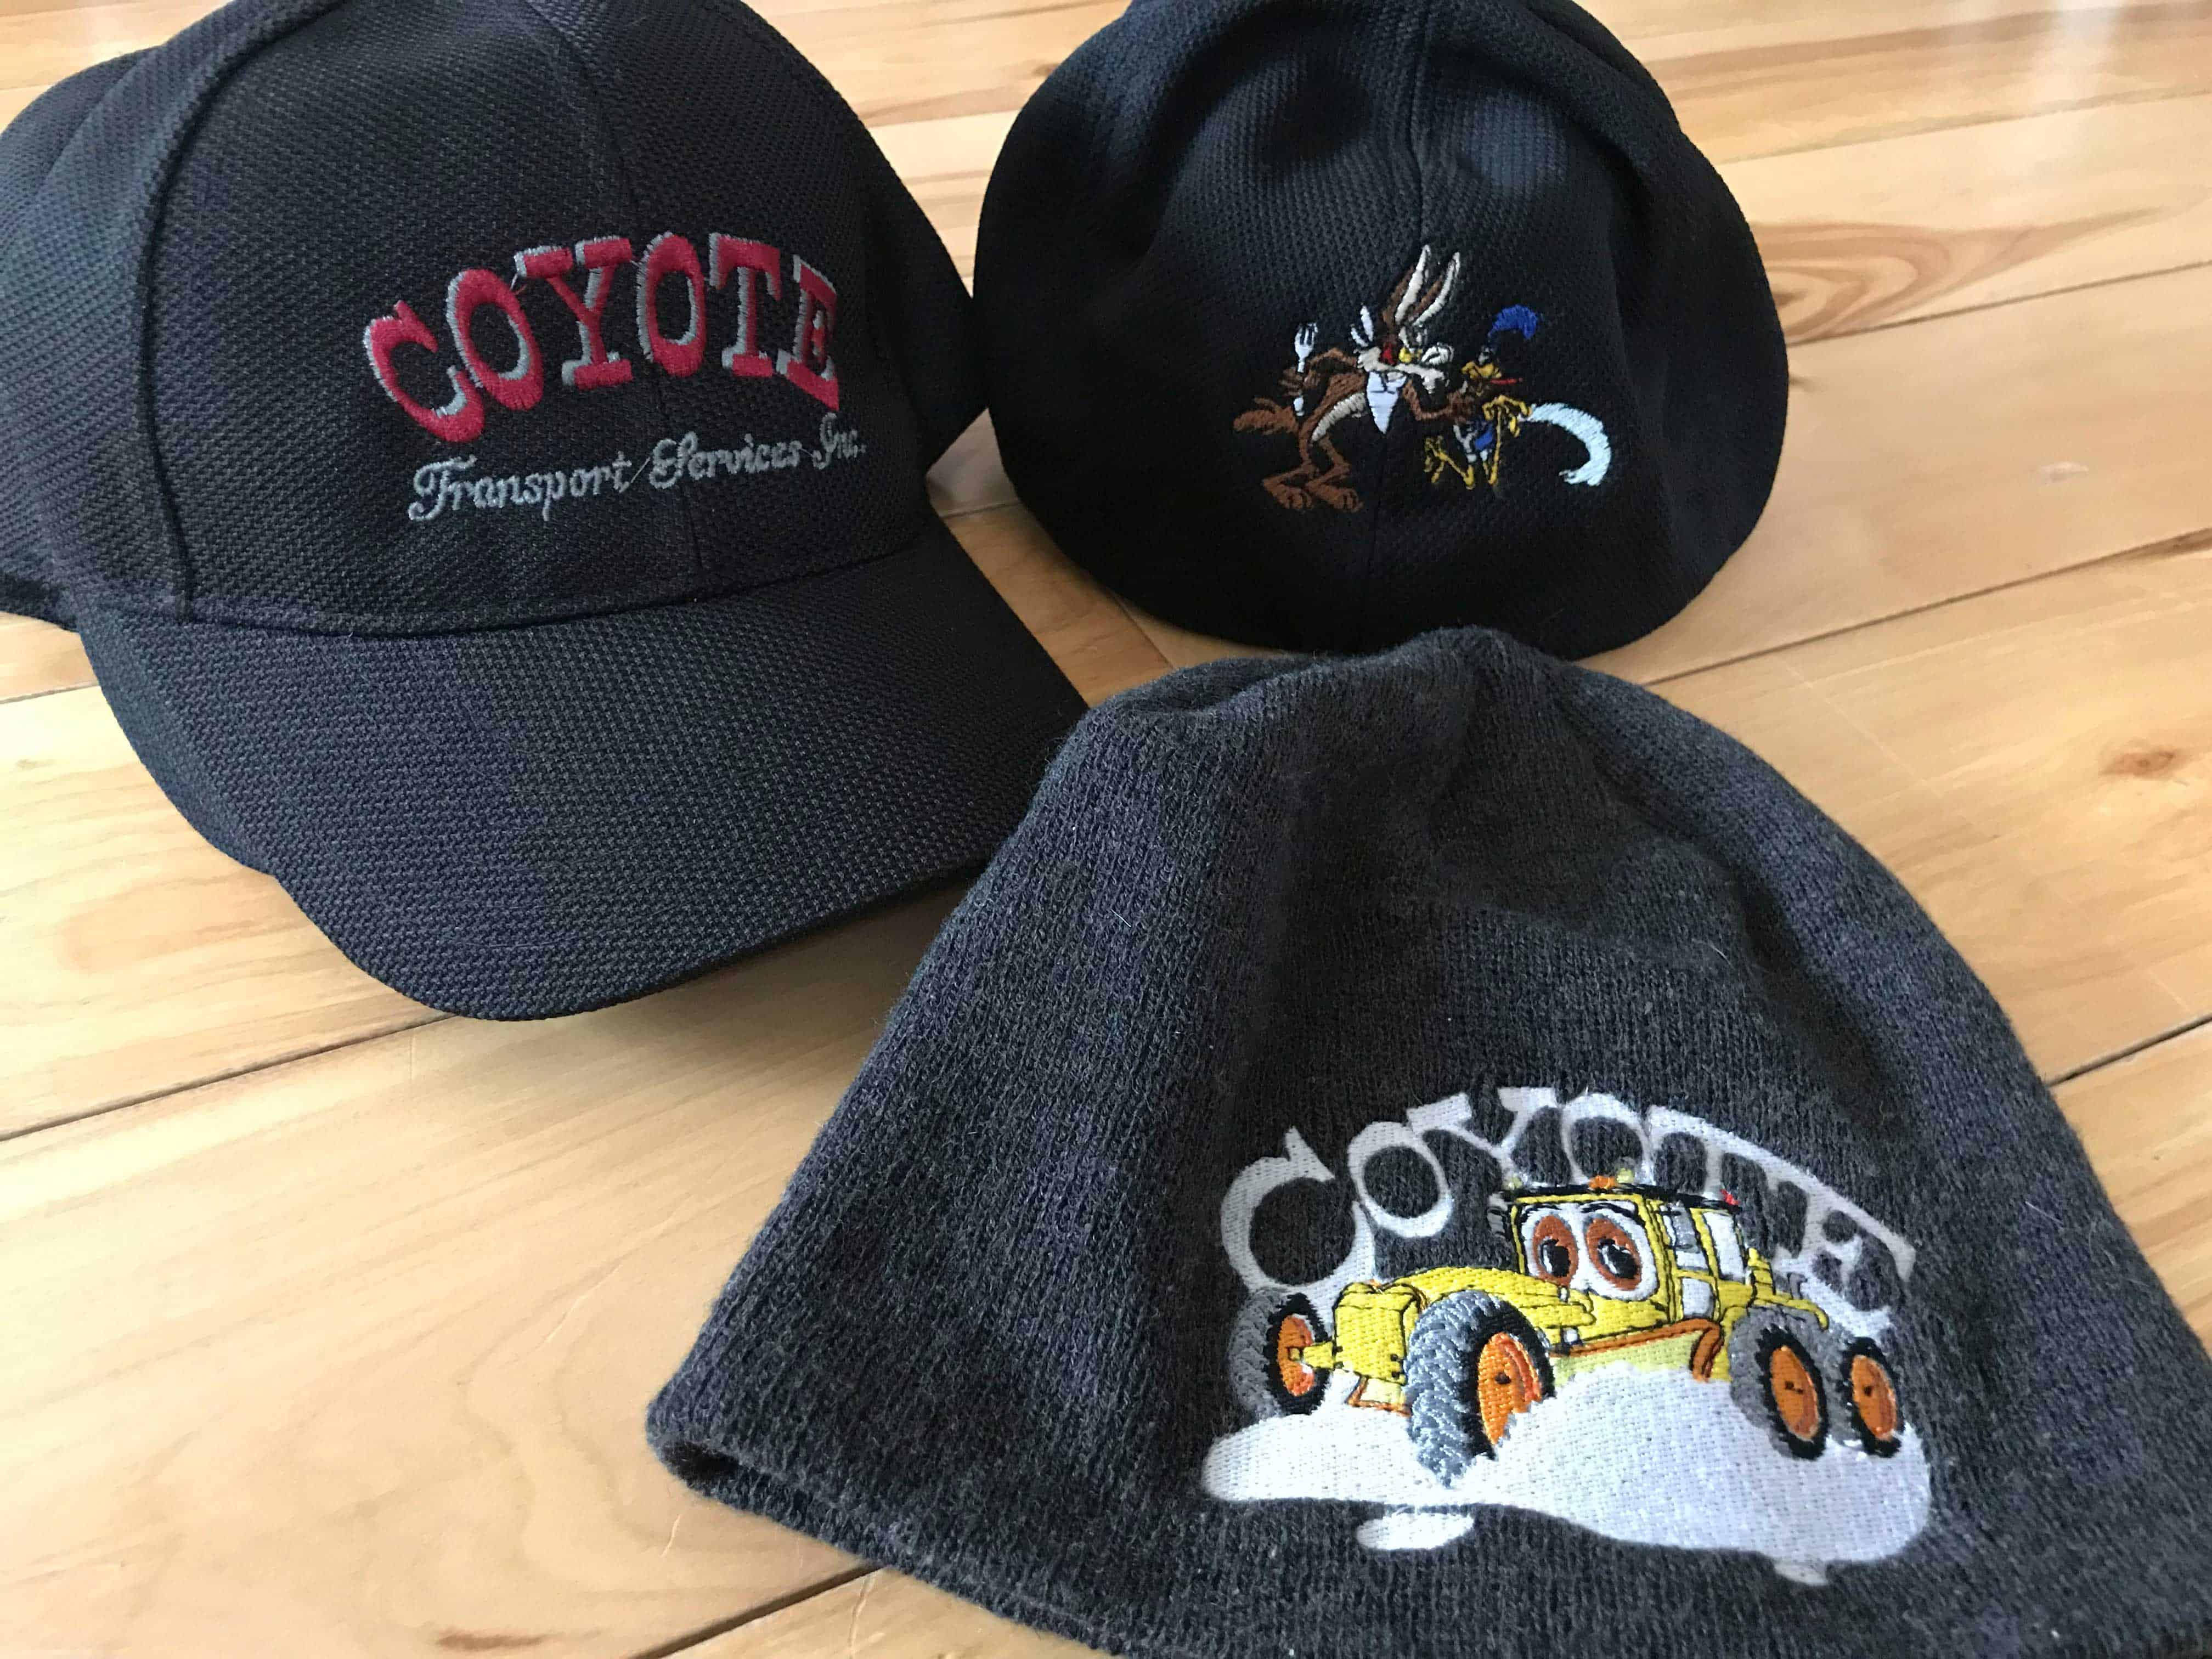 Coyote-Hats-and-Toque-Embroidery